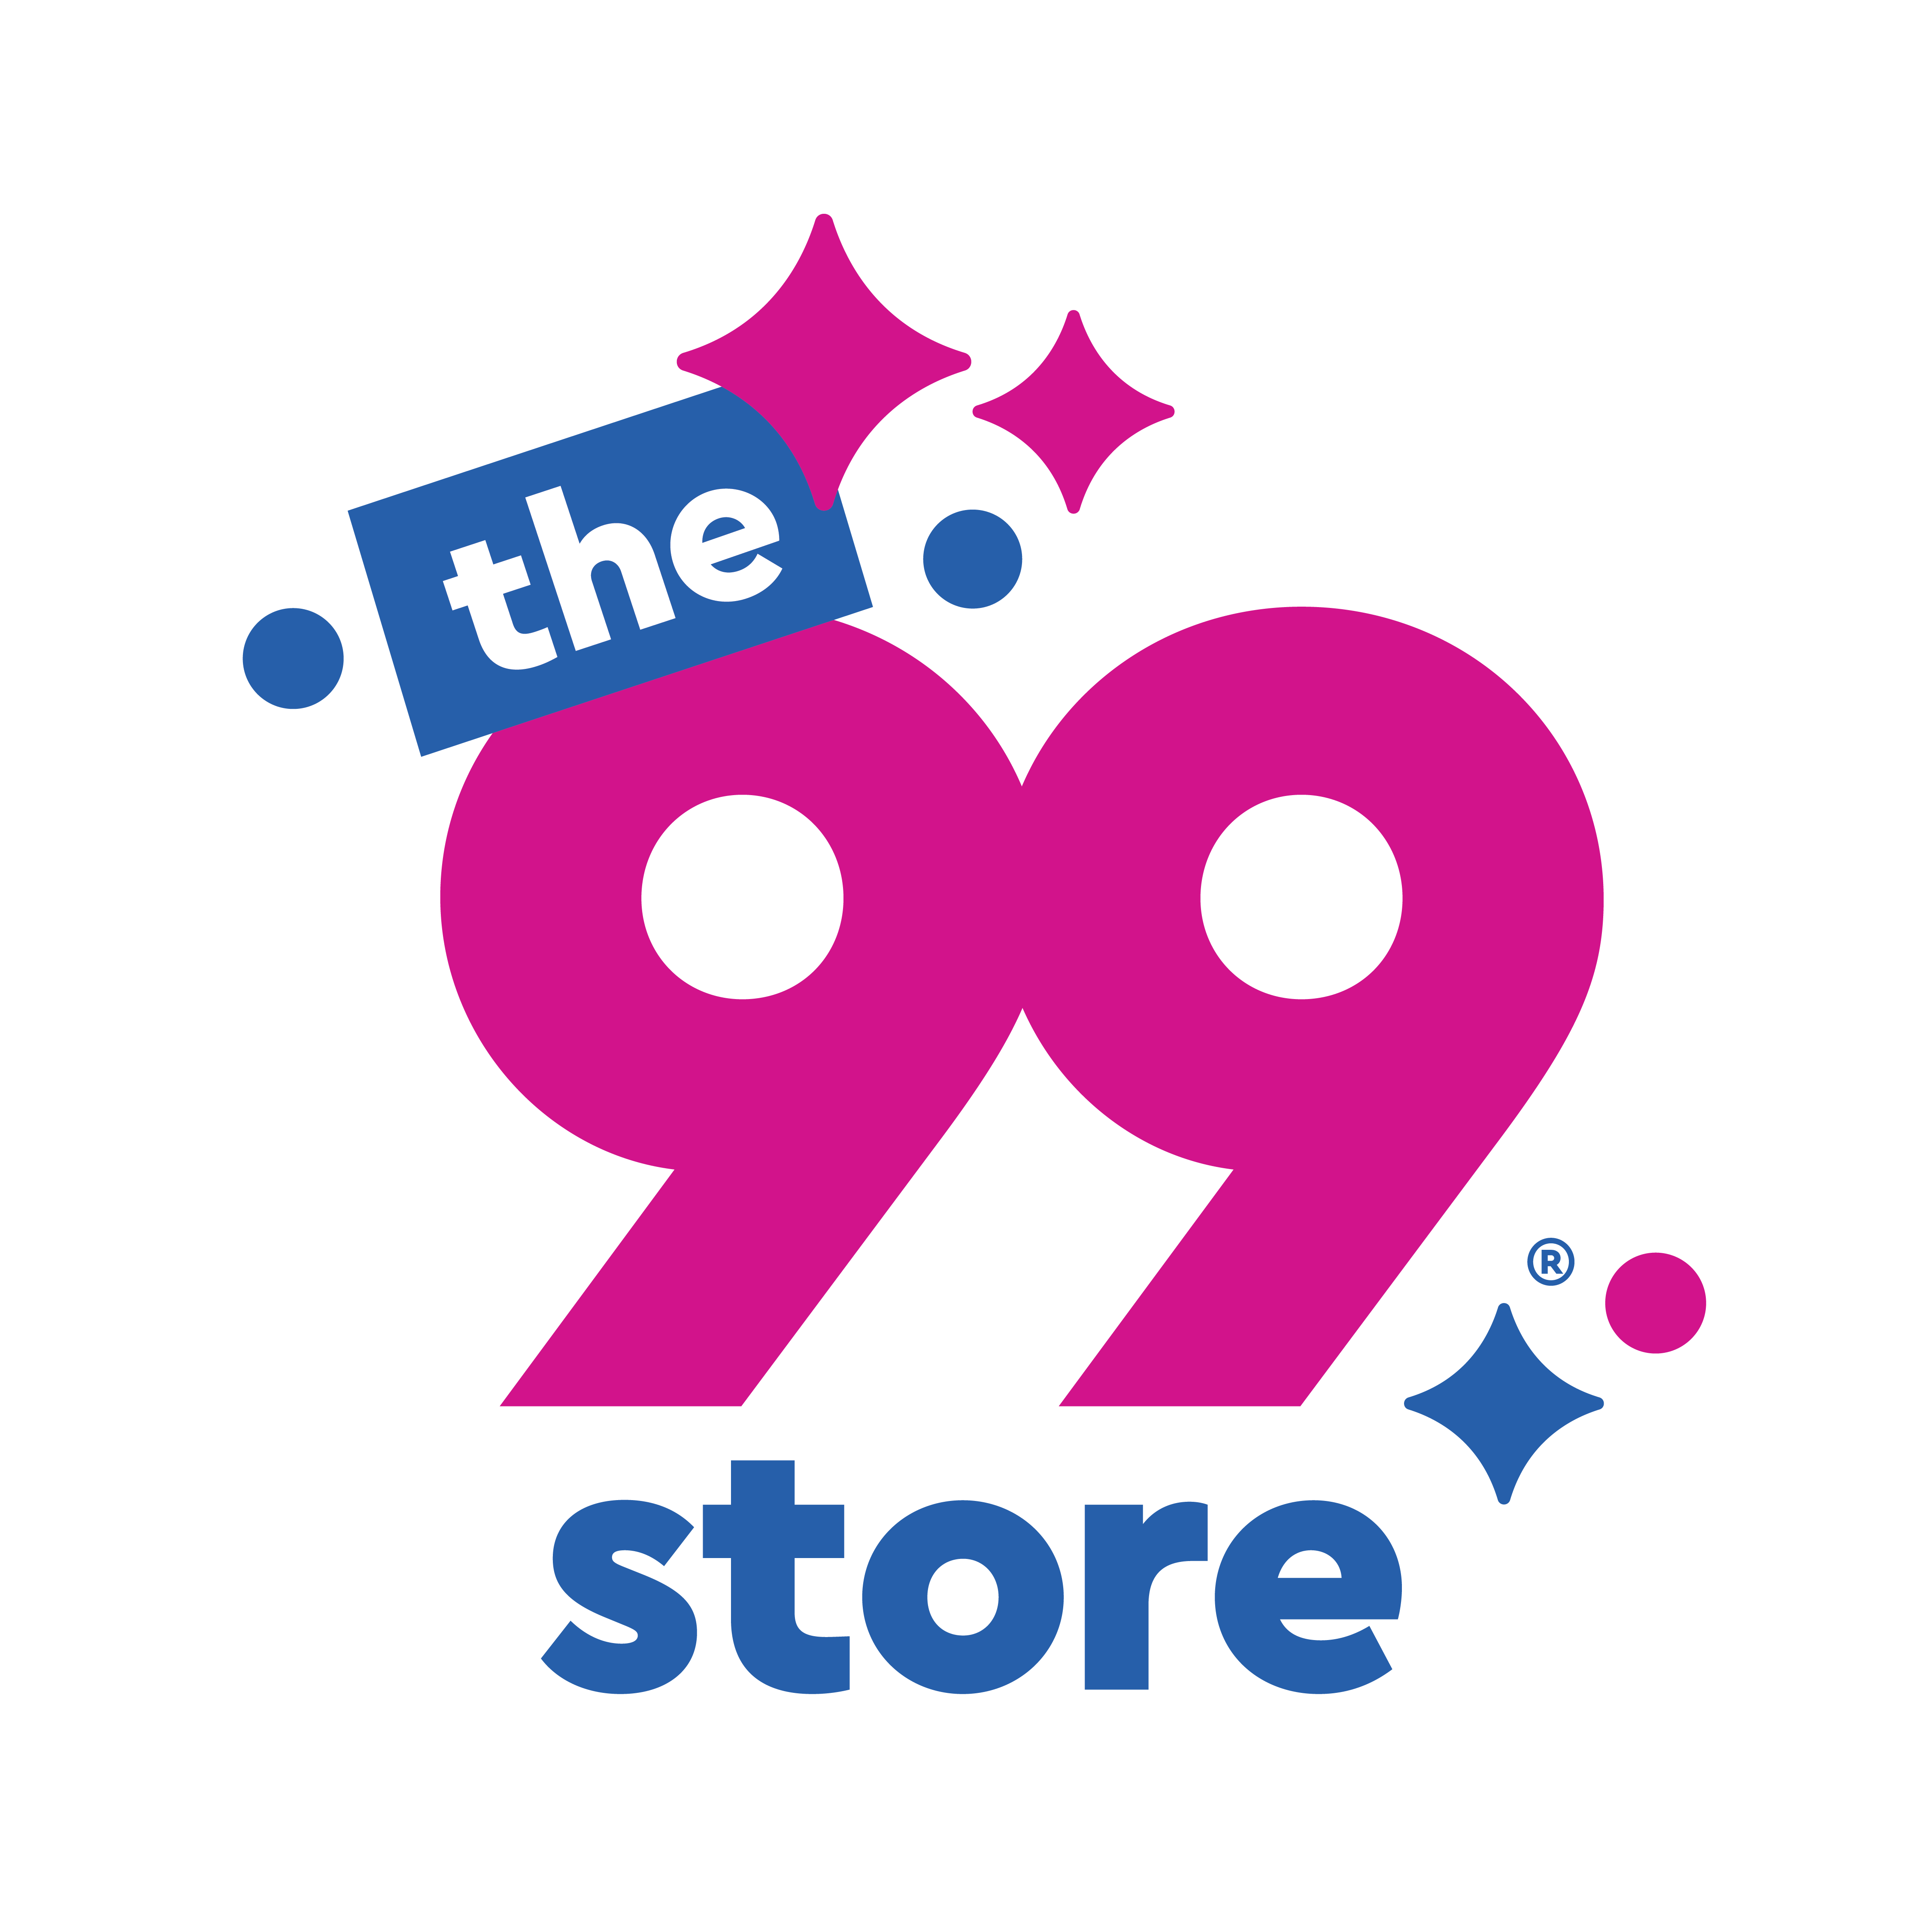 The 99 Store logo